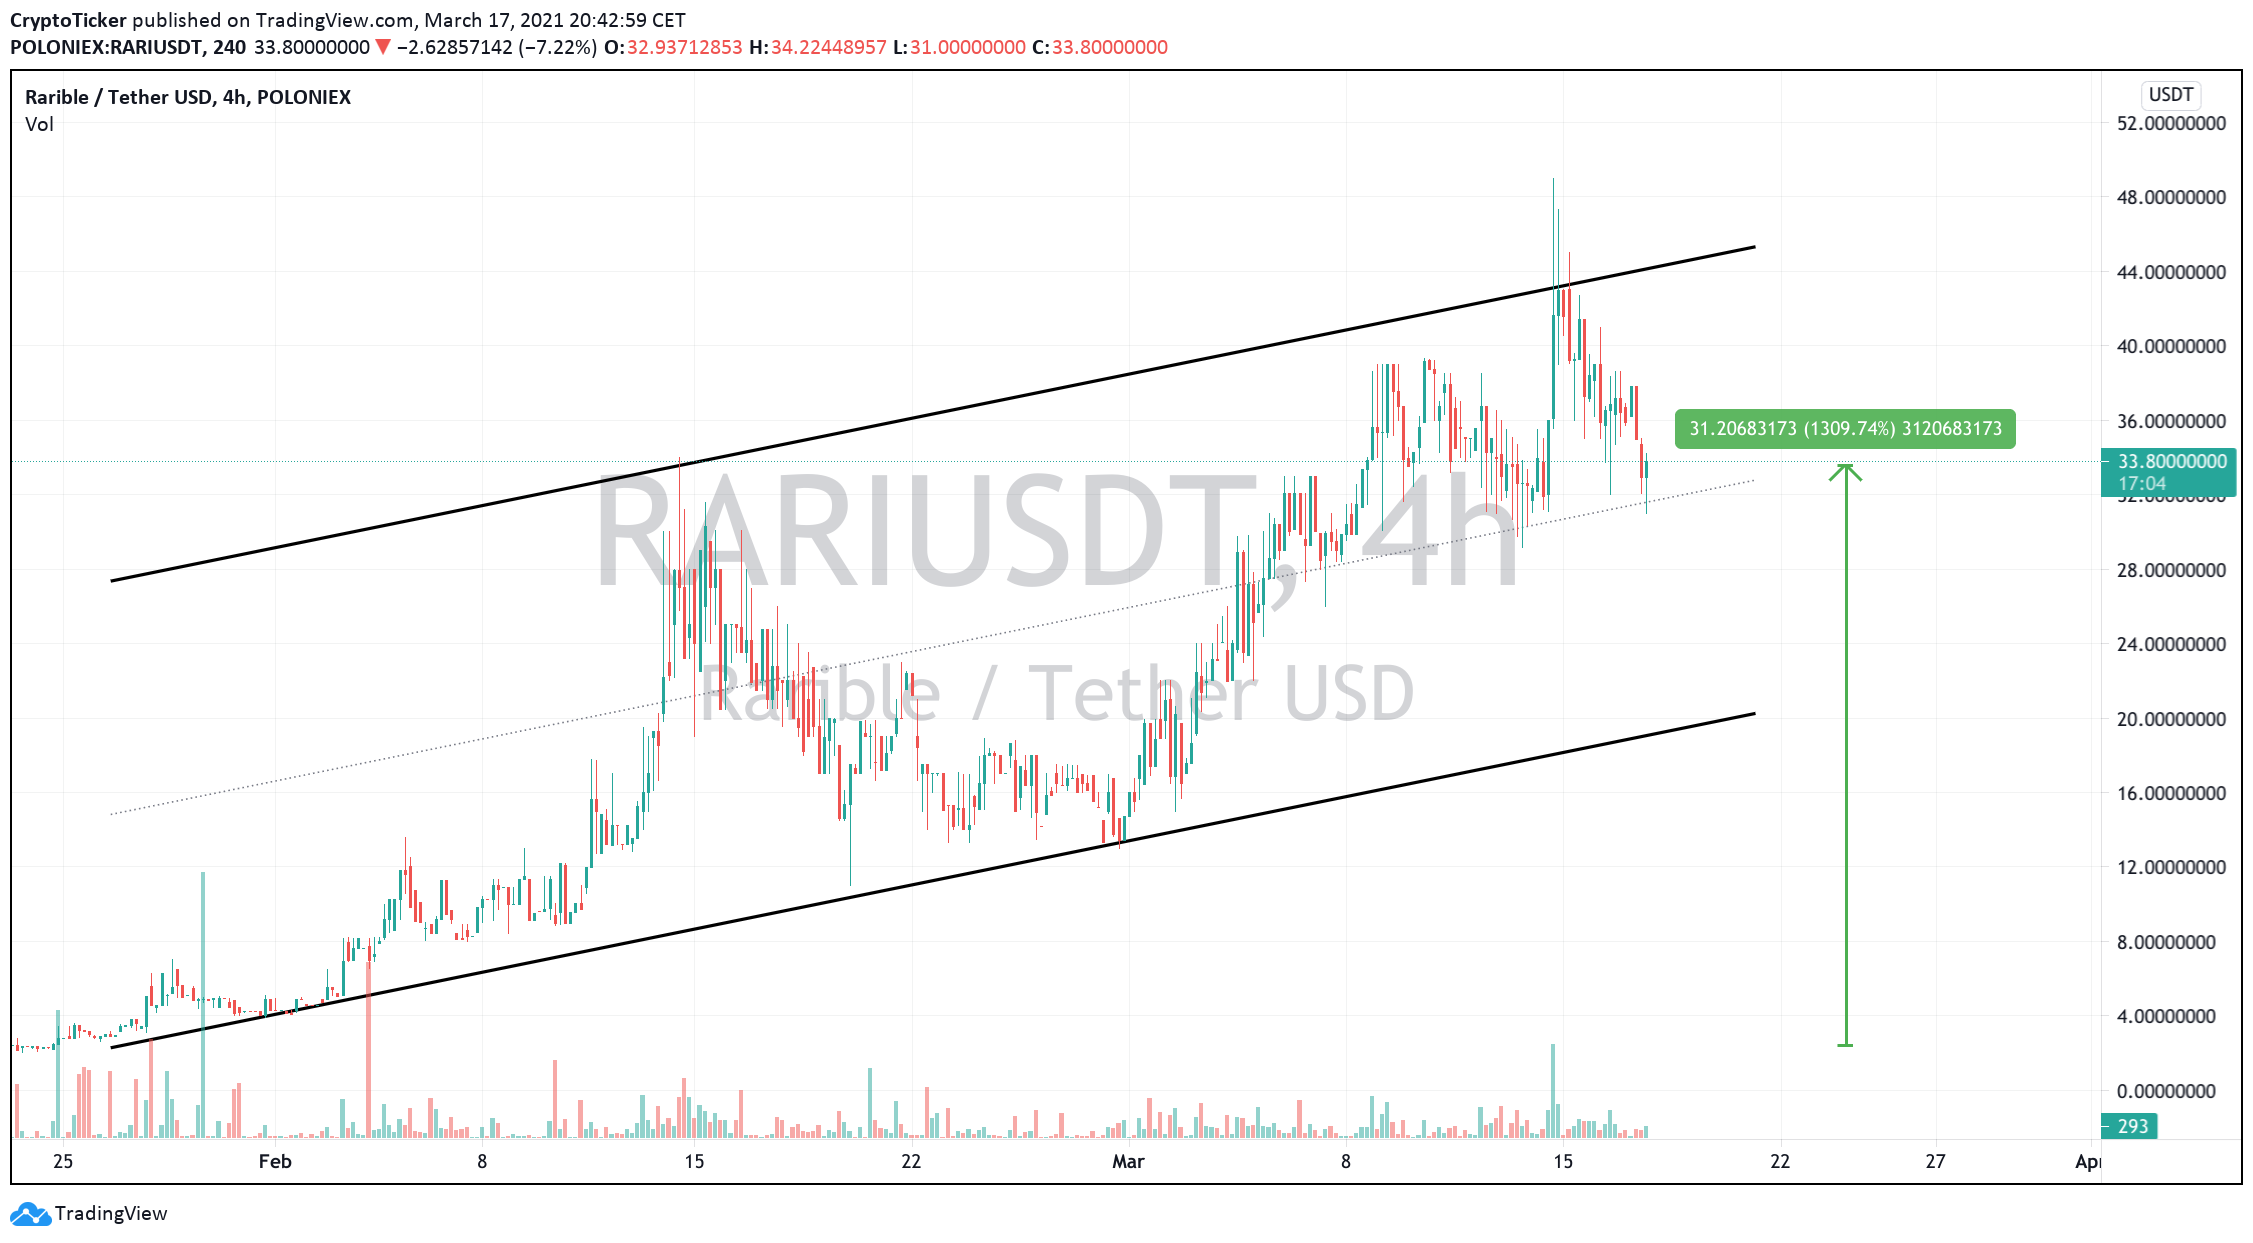 RARI/USDT 4-hour chart showing a 1,300% price increase